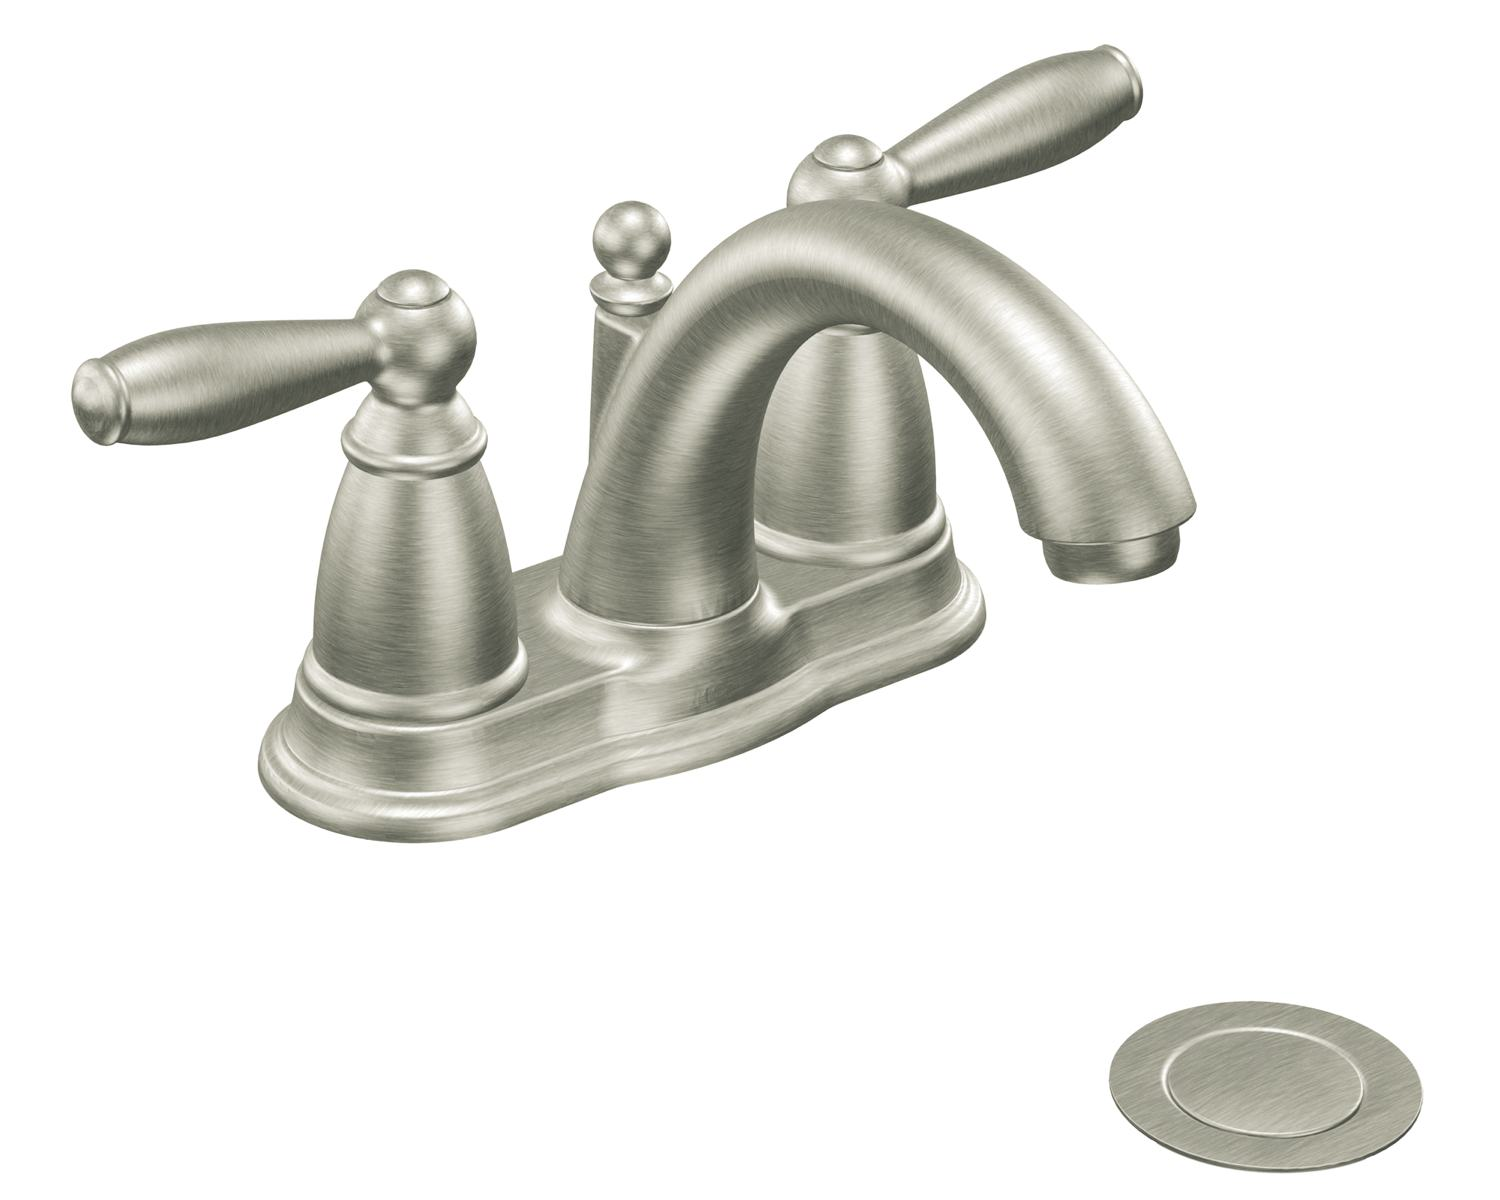 Moen 6610BN Brantford Two-Handle Low Arc Bathroom Faucet